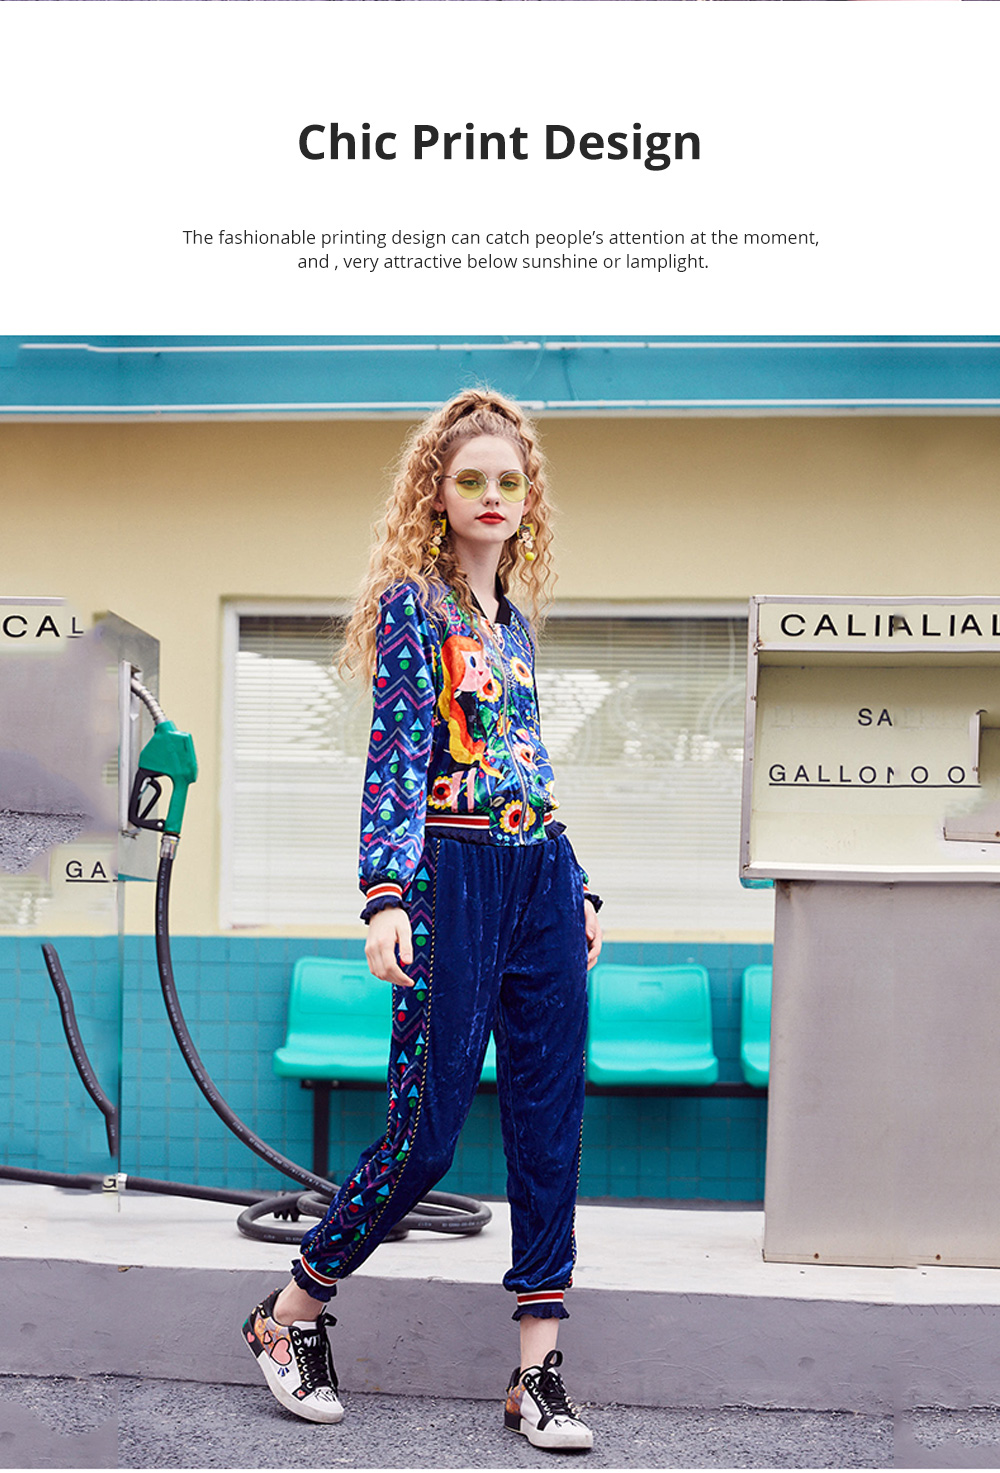 2020 Women's Velour Tracksuit Set with Long Sleeve Top Long Pants 2 Piece Sporty Velvet Suits with Printed Flowers 3